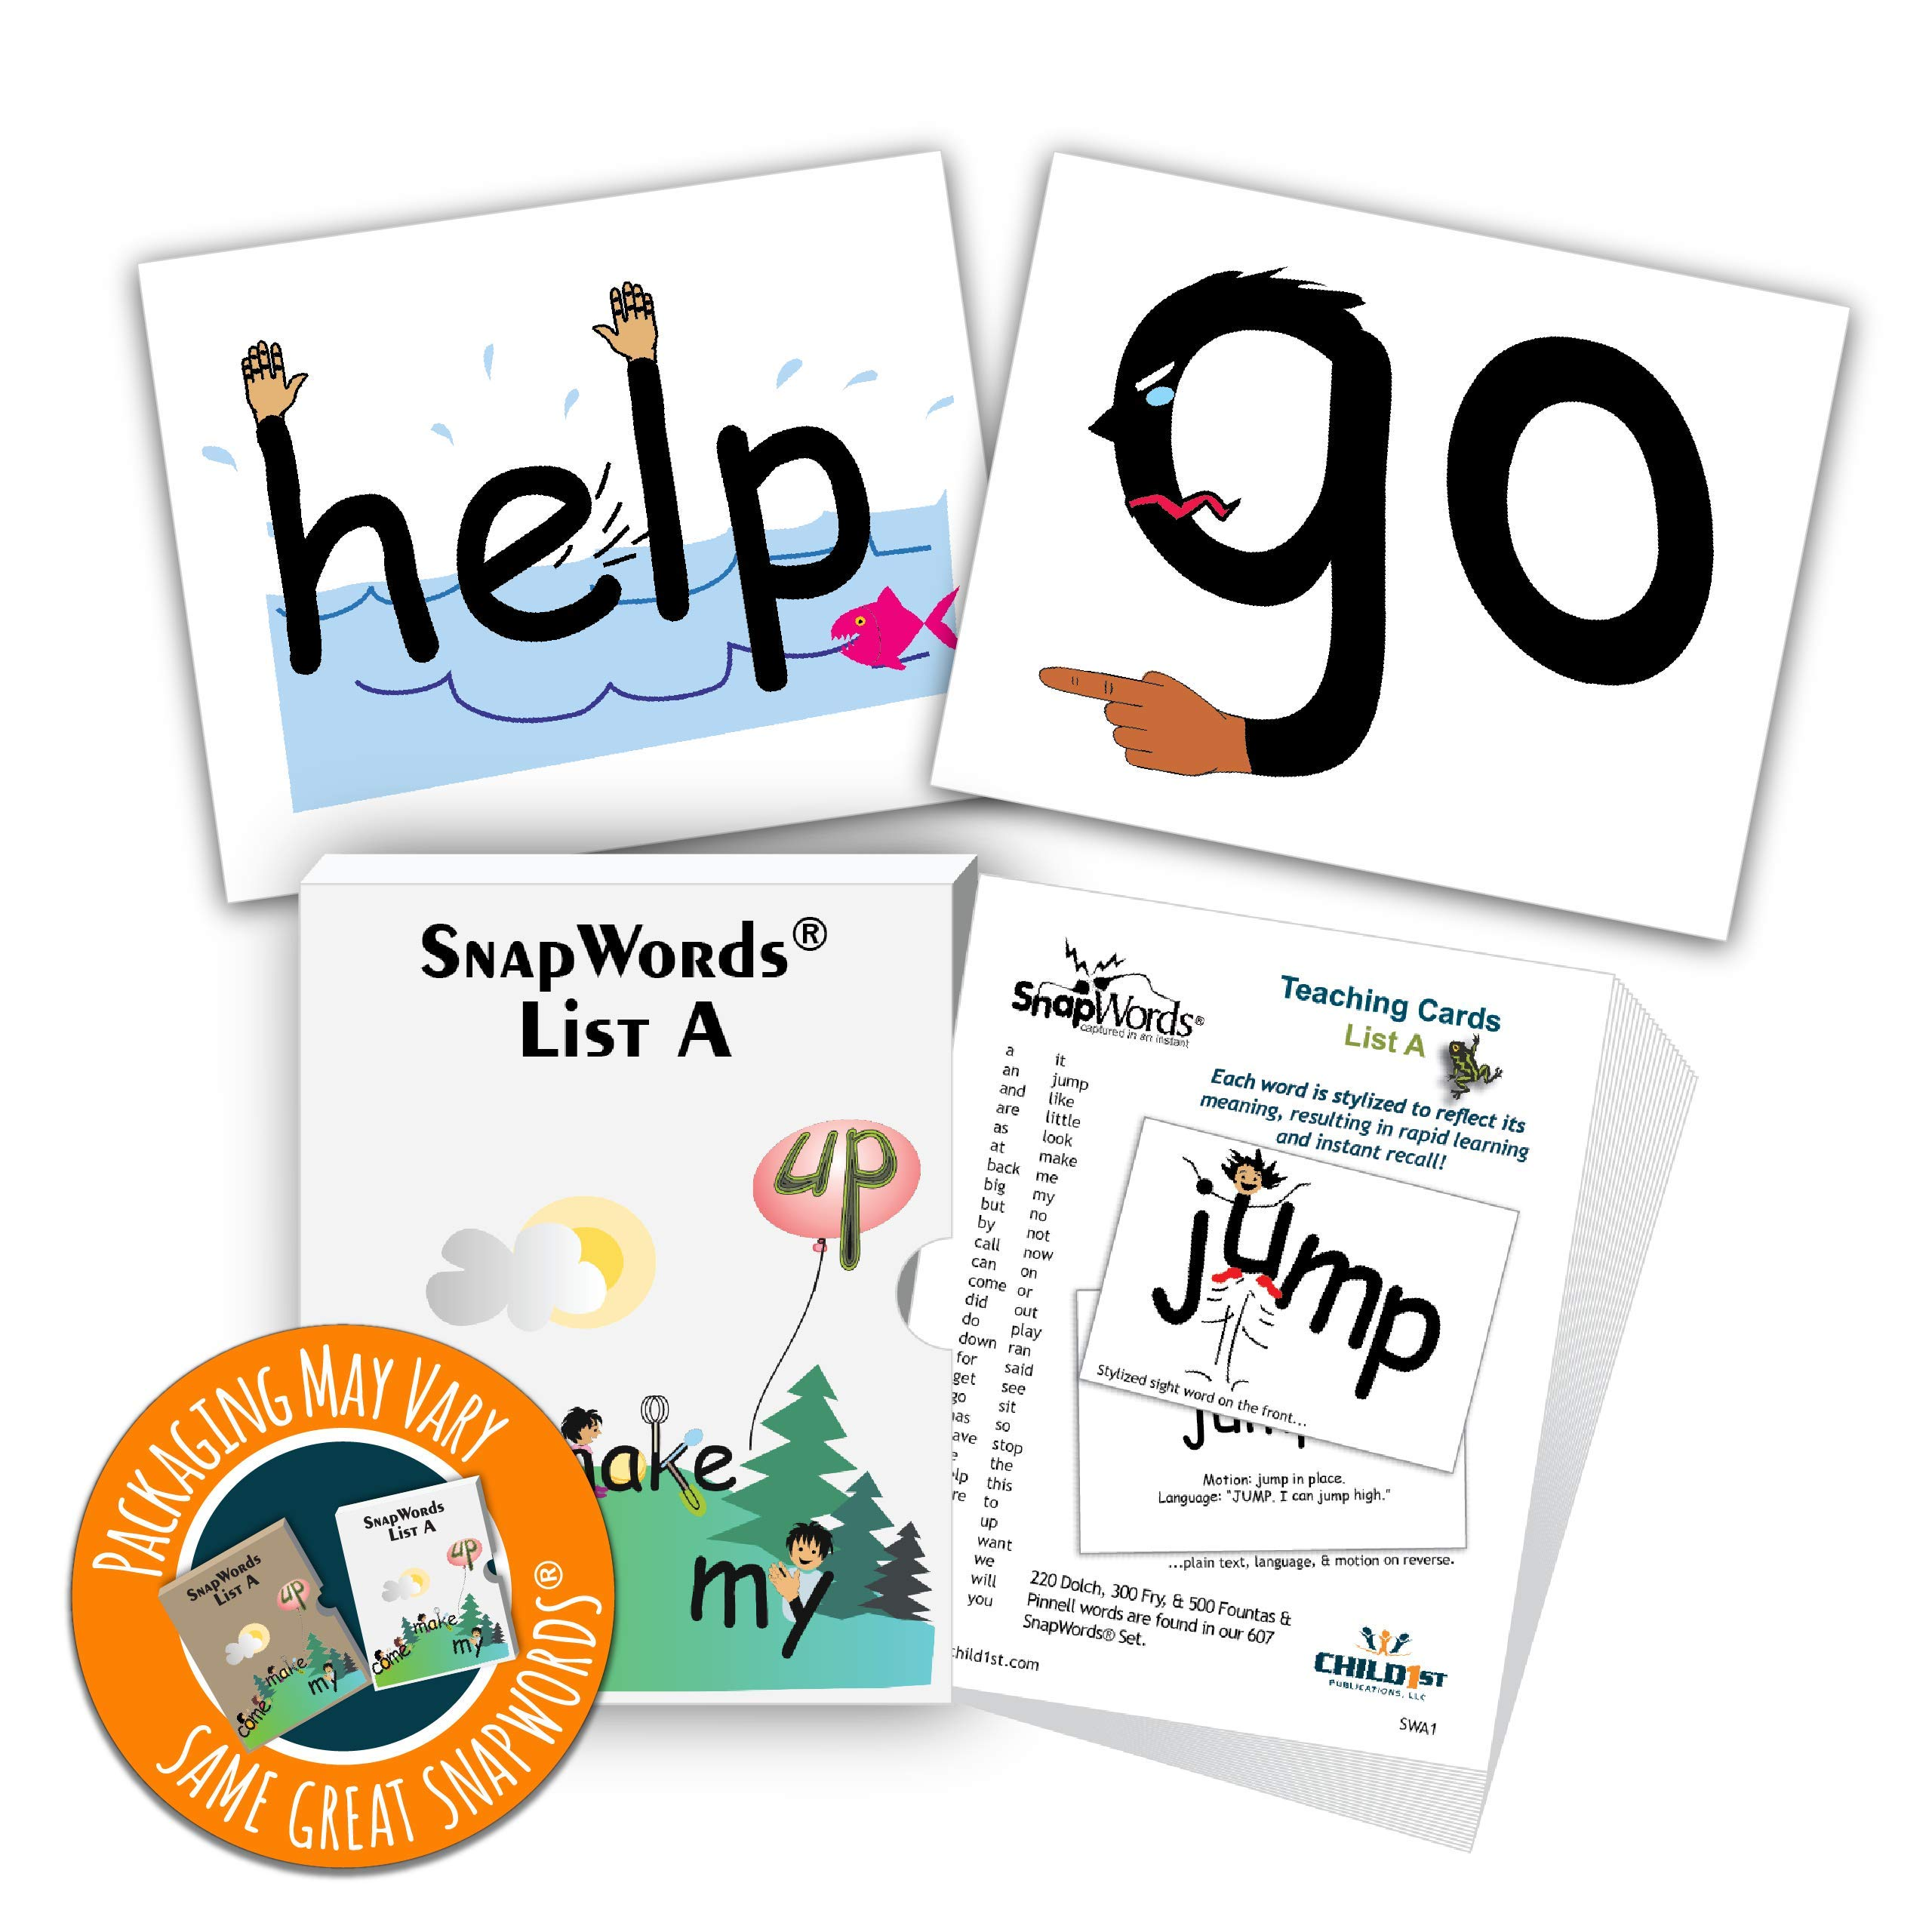 SnapWords List A Teaching Cards by Child1st Publications, LLC